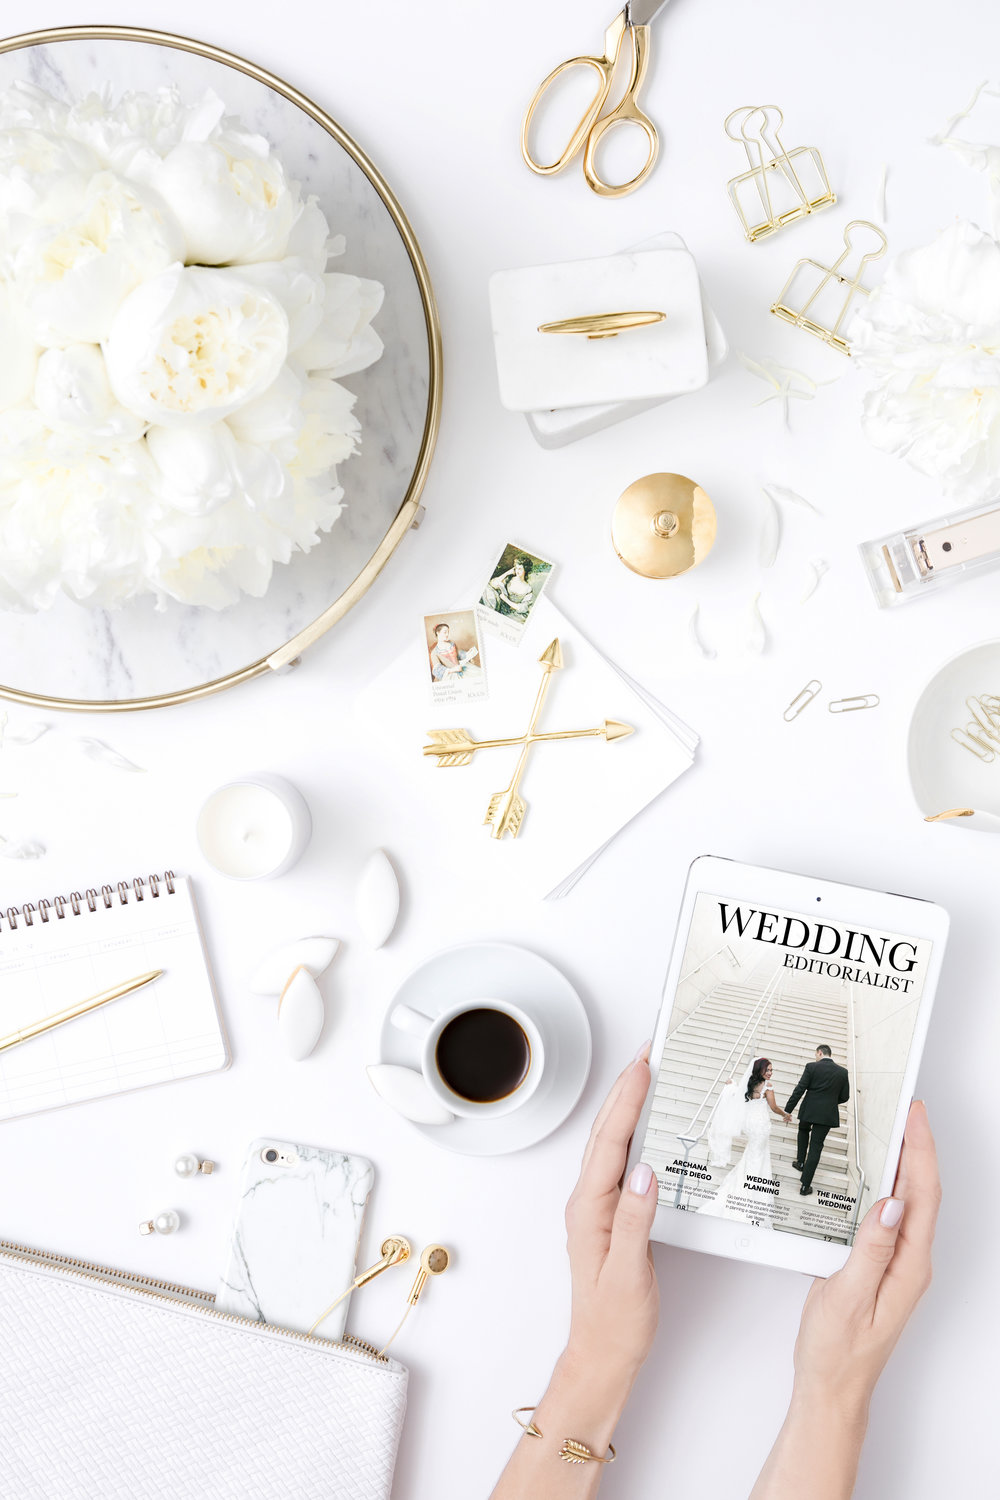 Custom Wedding Magazine celebrating Archana and Diego. Wedding planning by Andrea Eppolito. Images by J. Anne Photography.